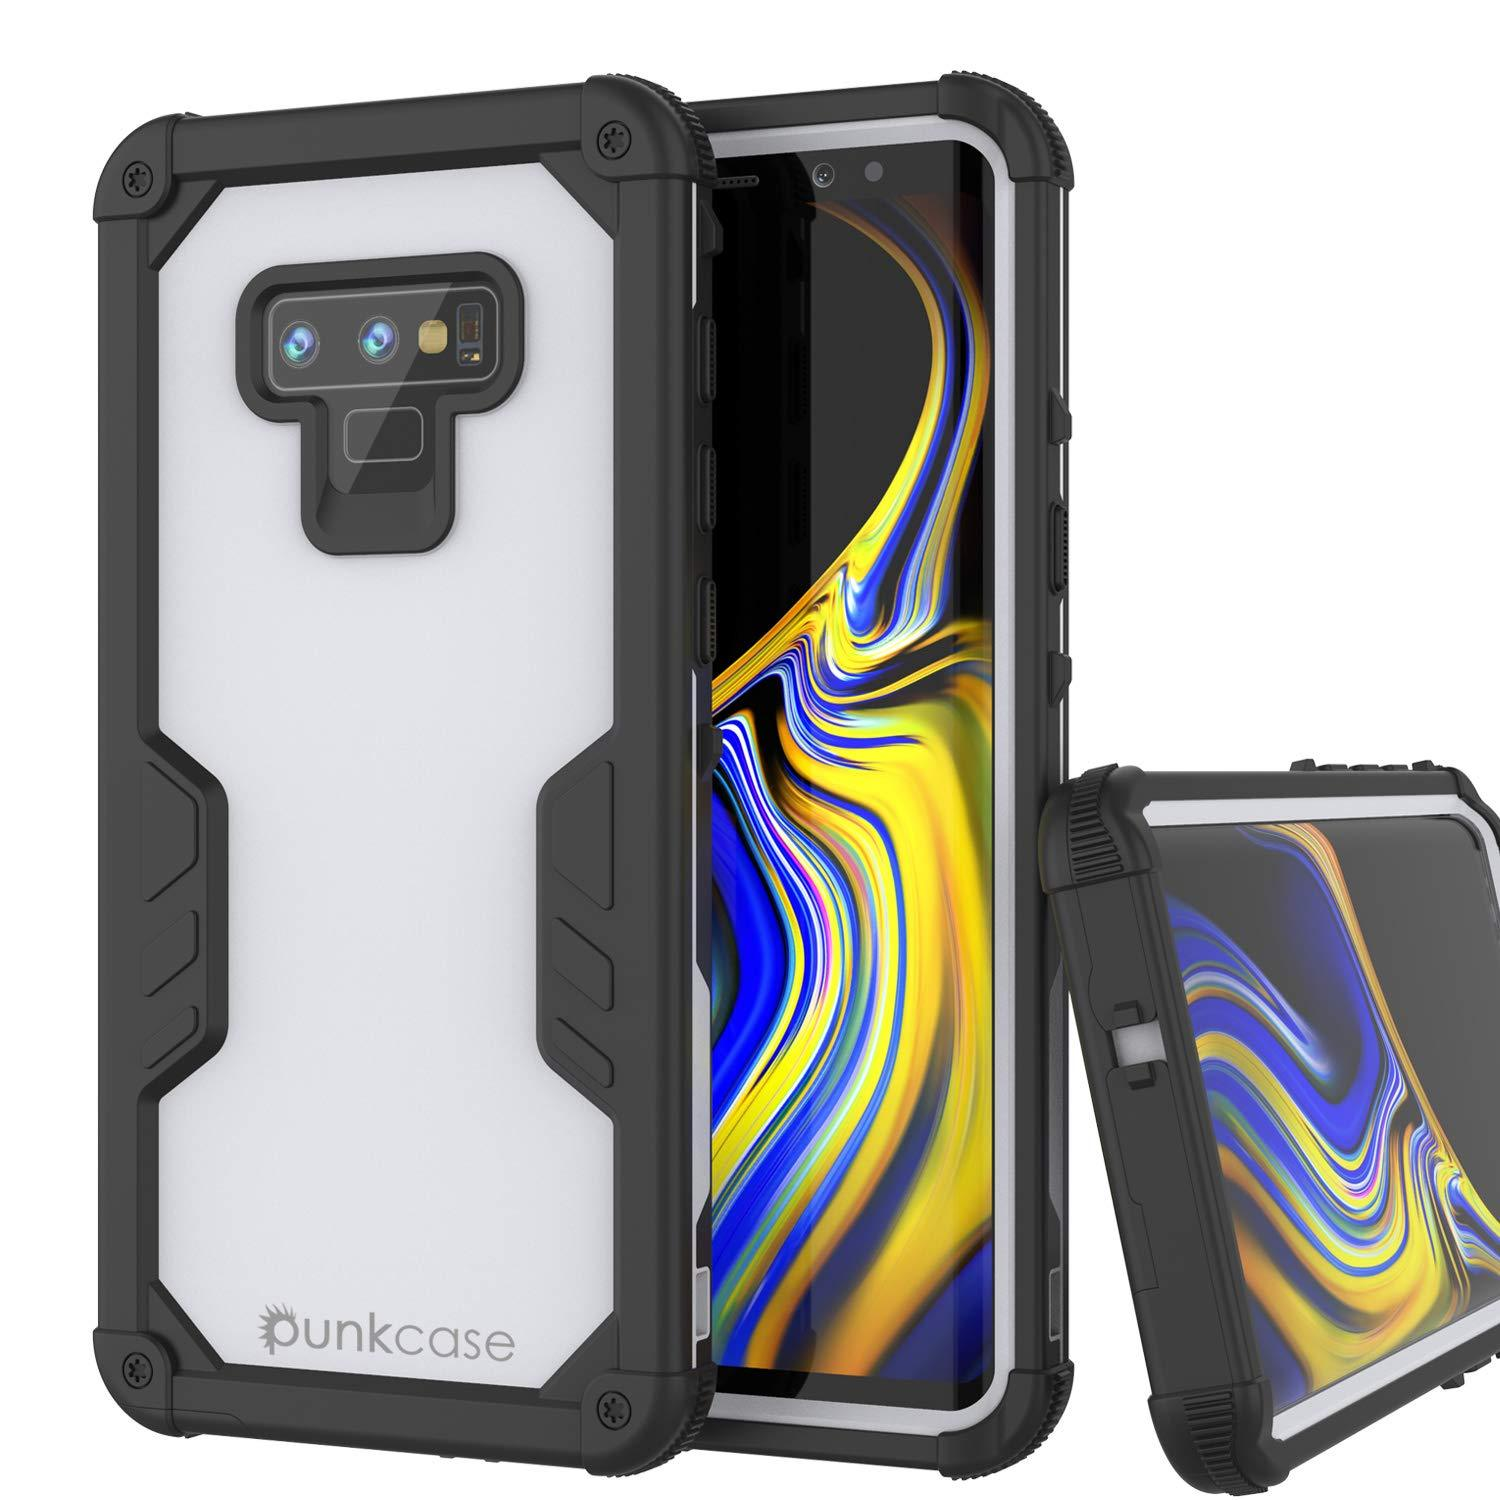 Punkcase Galaxy Note 9 Waterproof Case [Navy Seal Extreme Series] Armor Cover W/ Built In Screen Protector [White]